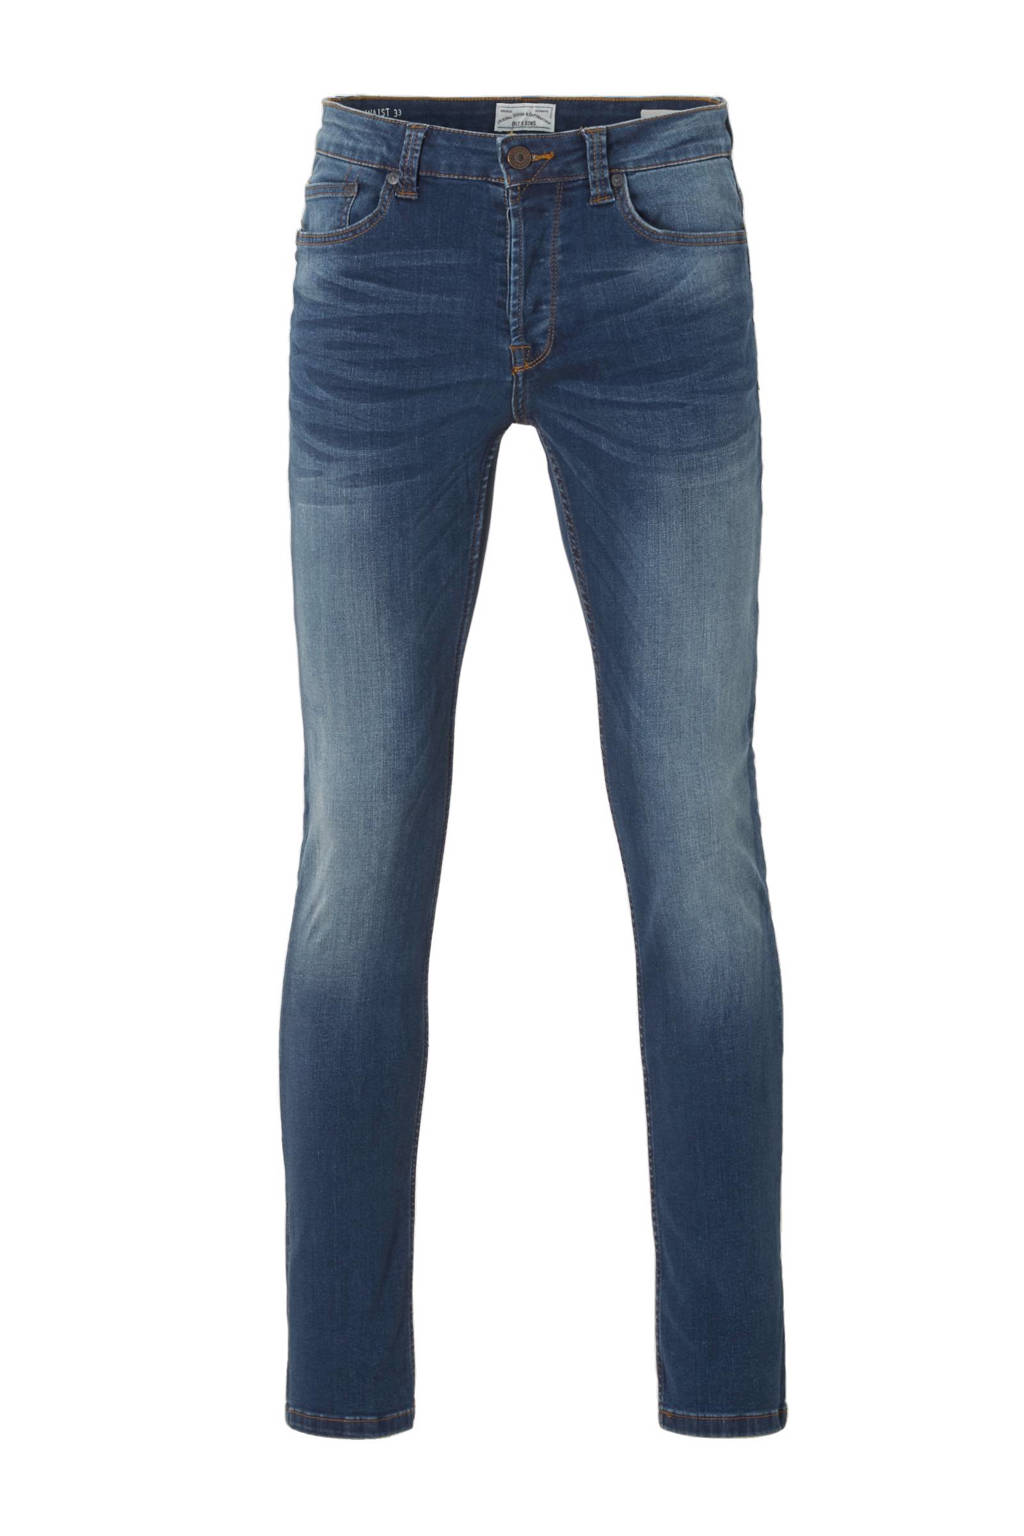 ONLY & SONS regular fit jeans Weft, Blauw